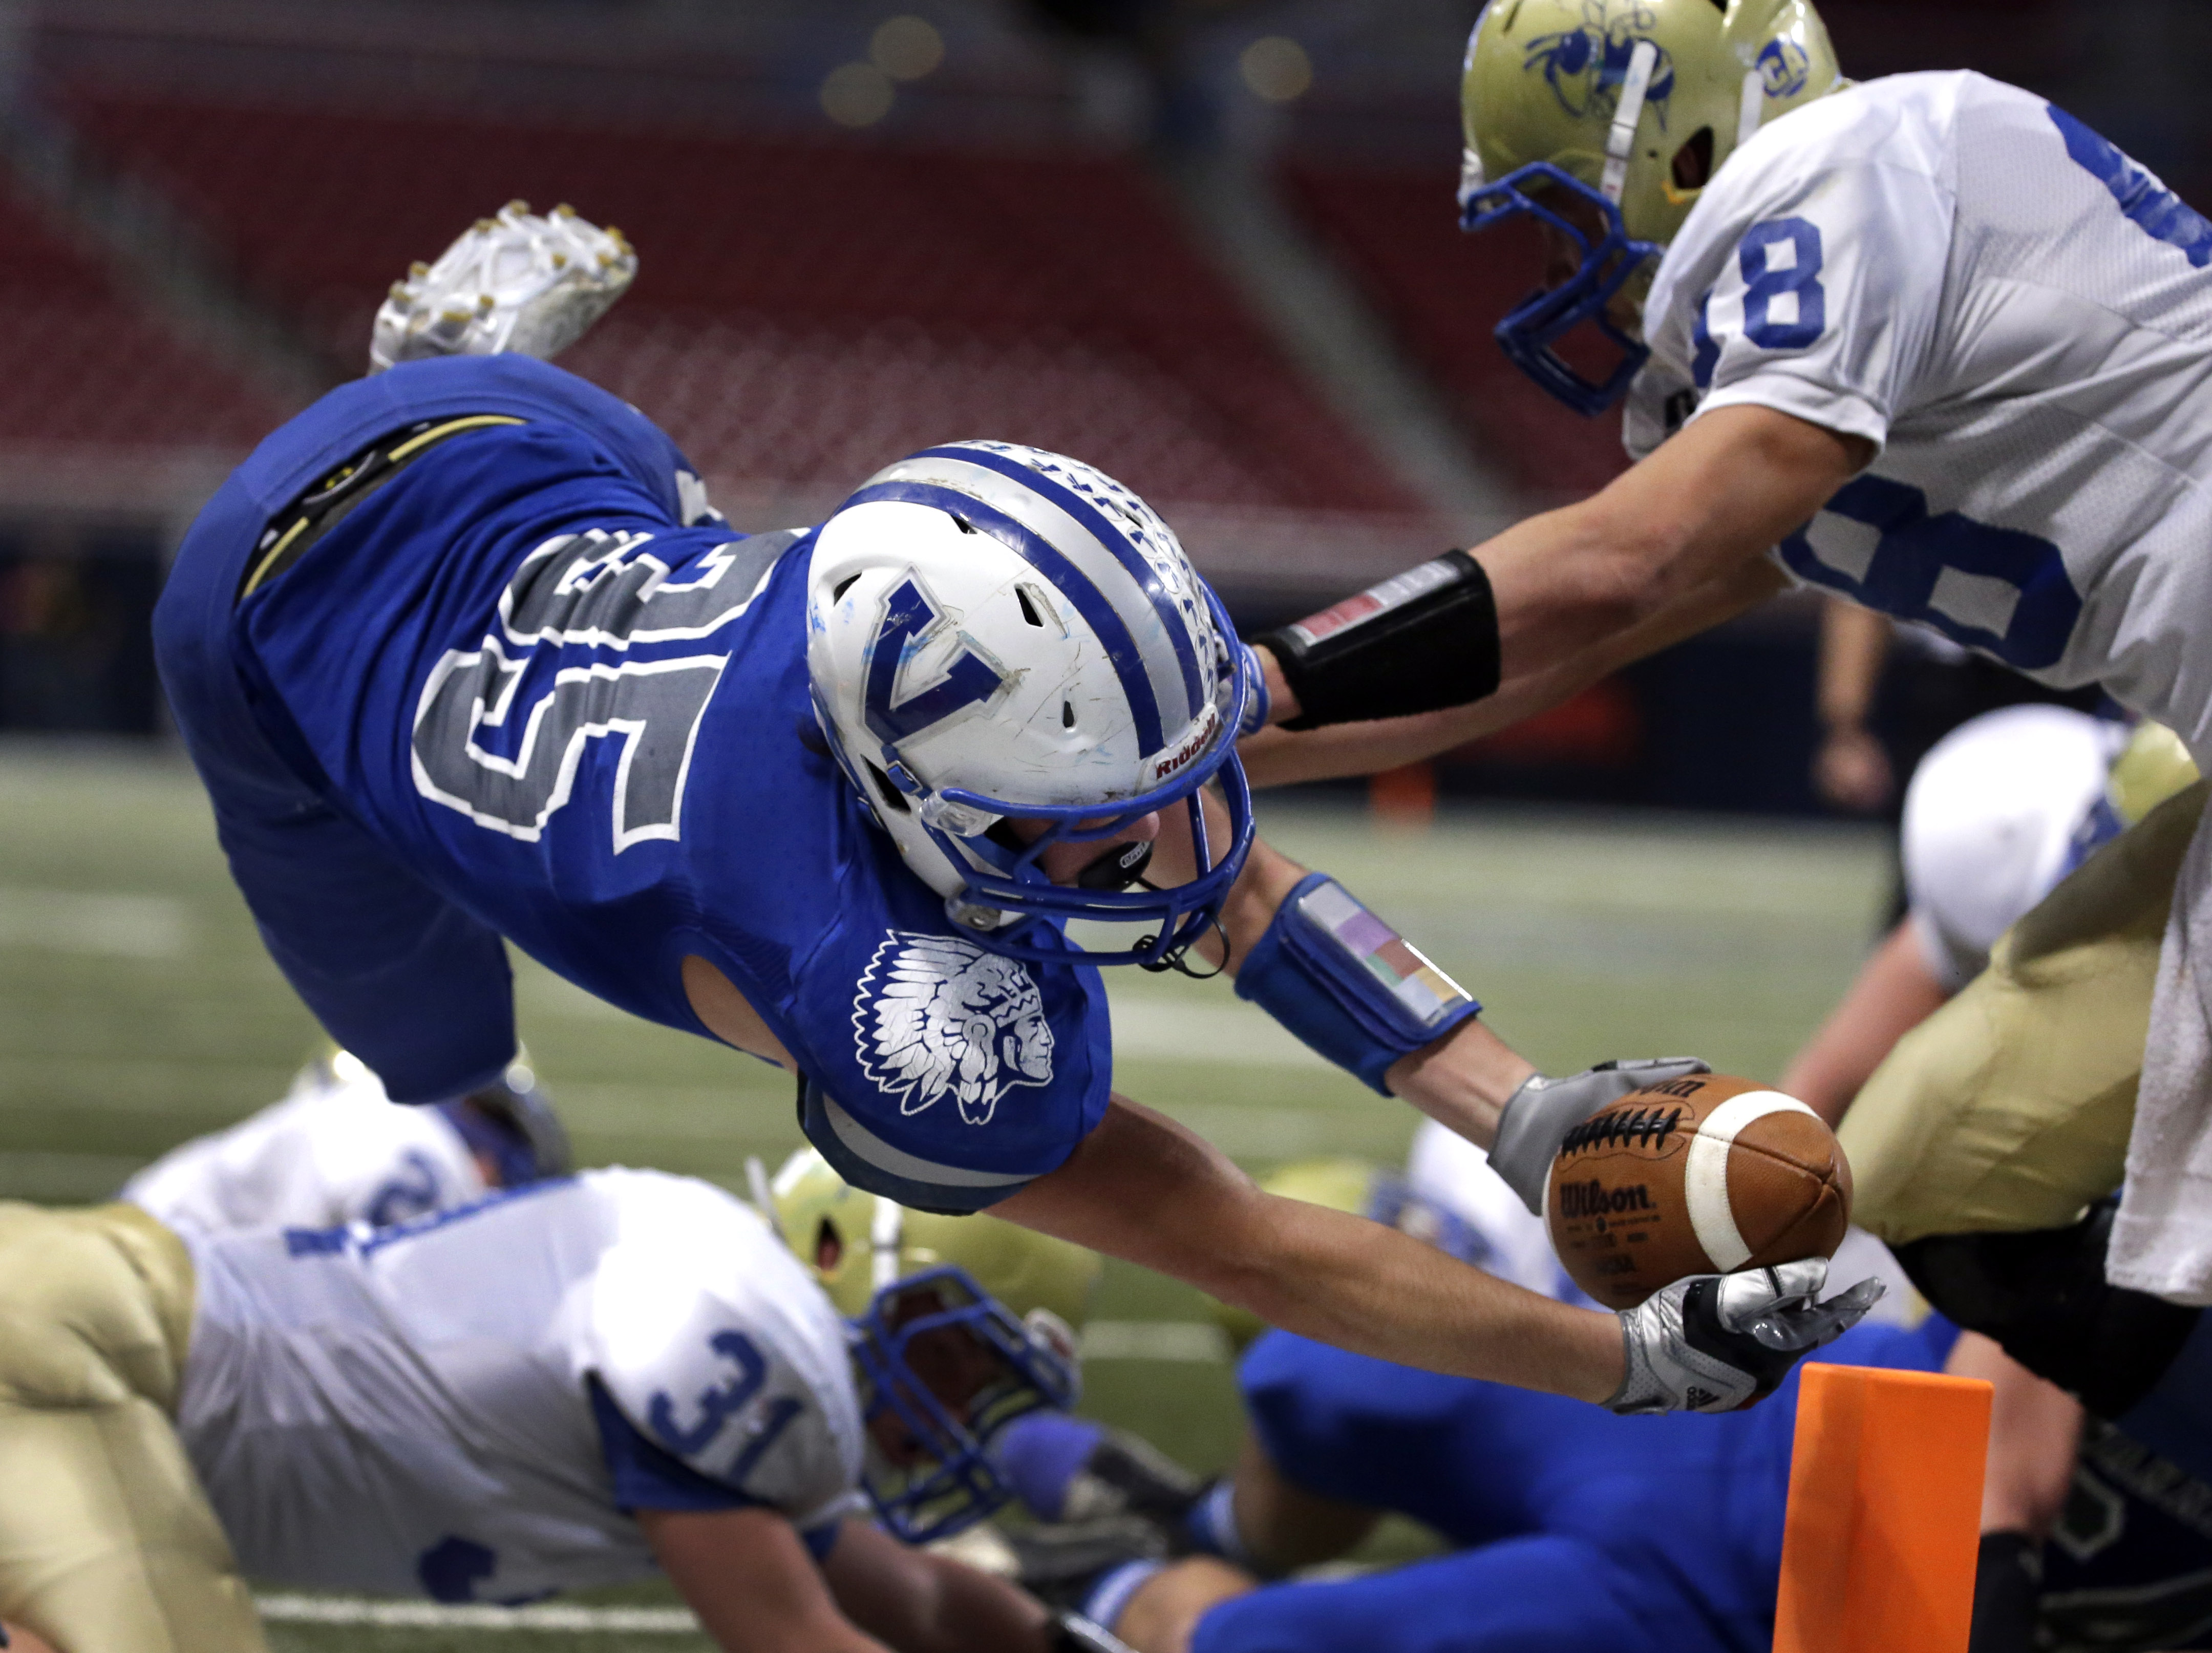 Valle Catholic's Nicholas Oberle, left, dives but comes up just short of the end zone as his is pushed out of bounds by Penney's Telly Harper, right, during the first half in the Missouri Class 1 state high school football championship Saturday, Nov. 28, 2015, in St. Louis. (AP Photo/Jeff Roberson) ORG XMIT: MOJR107